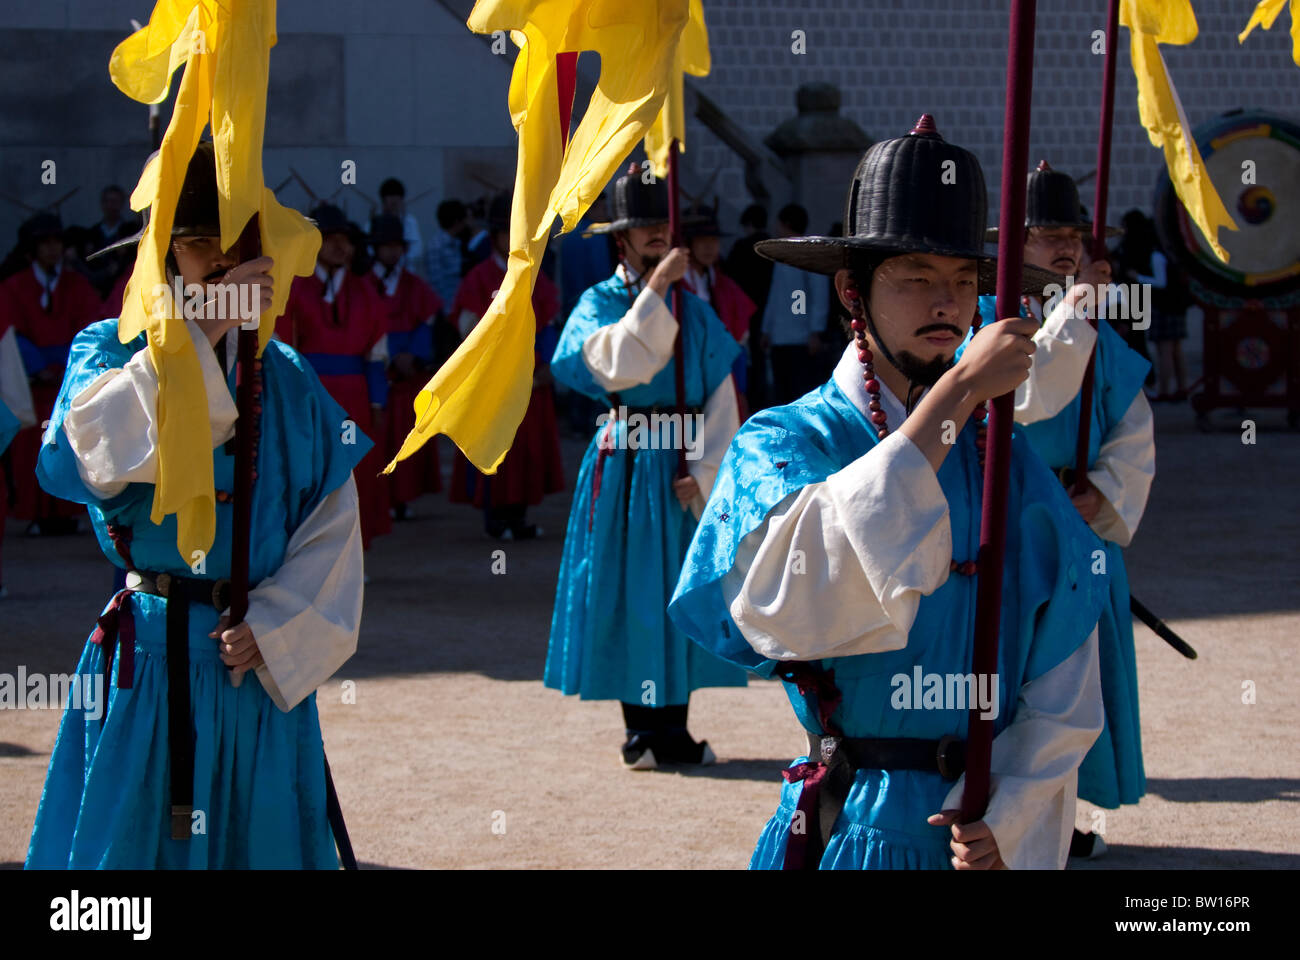 Gyeongbok Palace, Seoul, South Korea, Changing of the Guard re-enactment - Stock Image